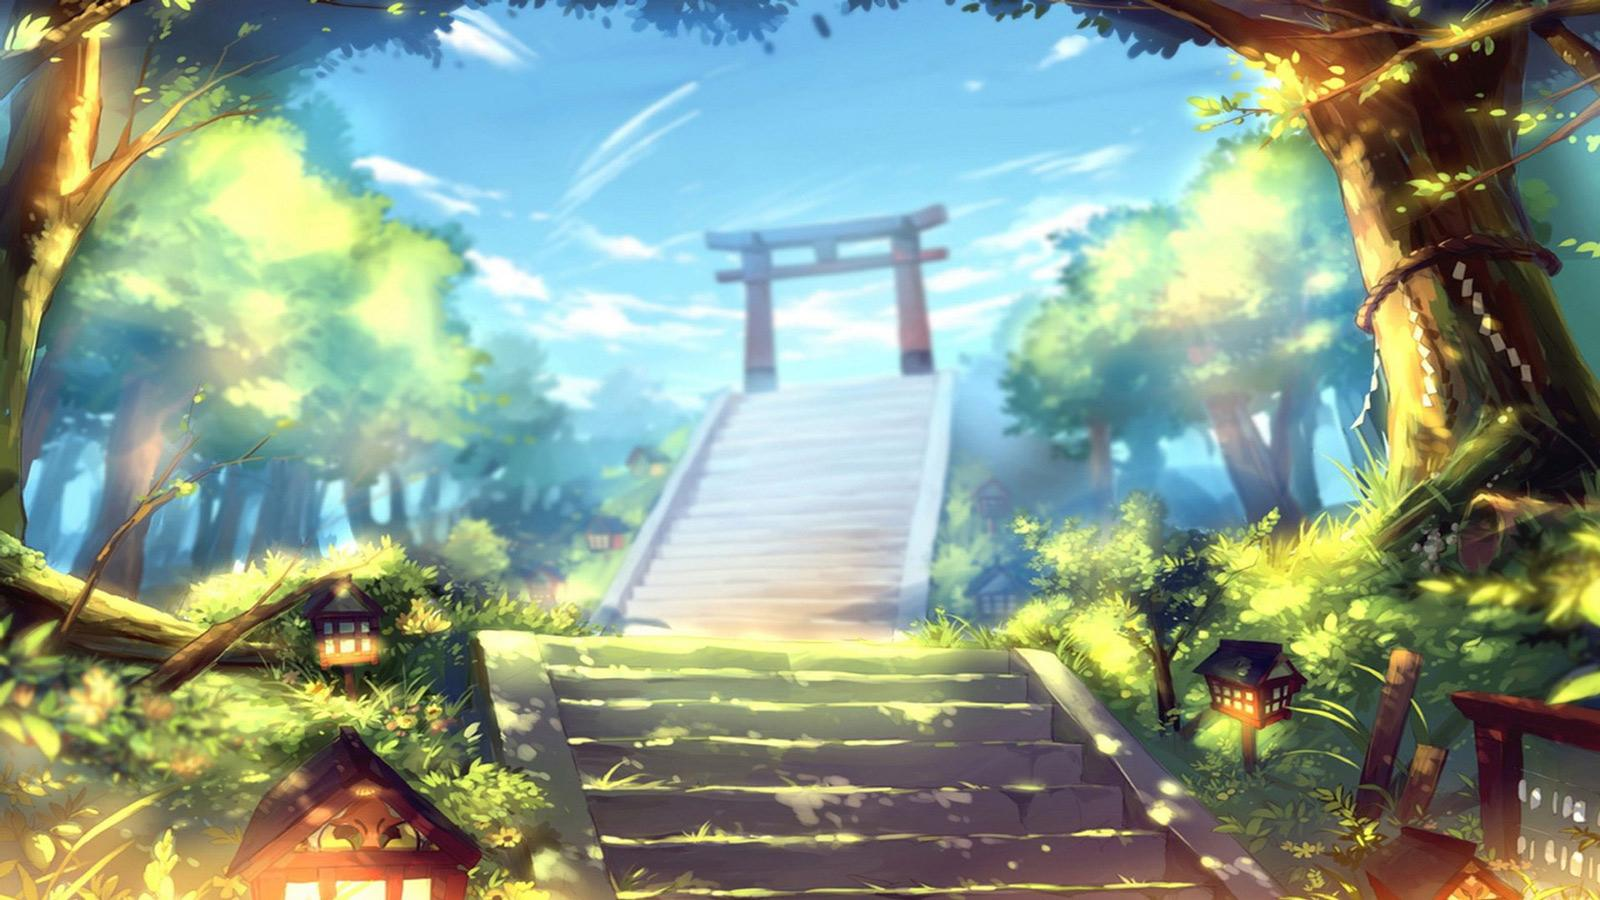 Torii Gate Anime Manga Artwork Wallpapers